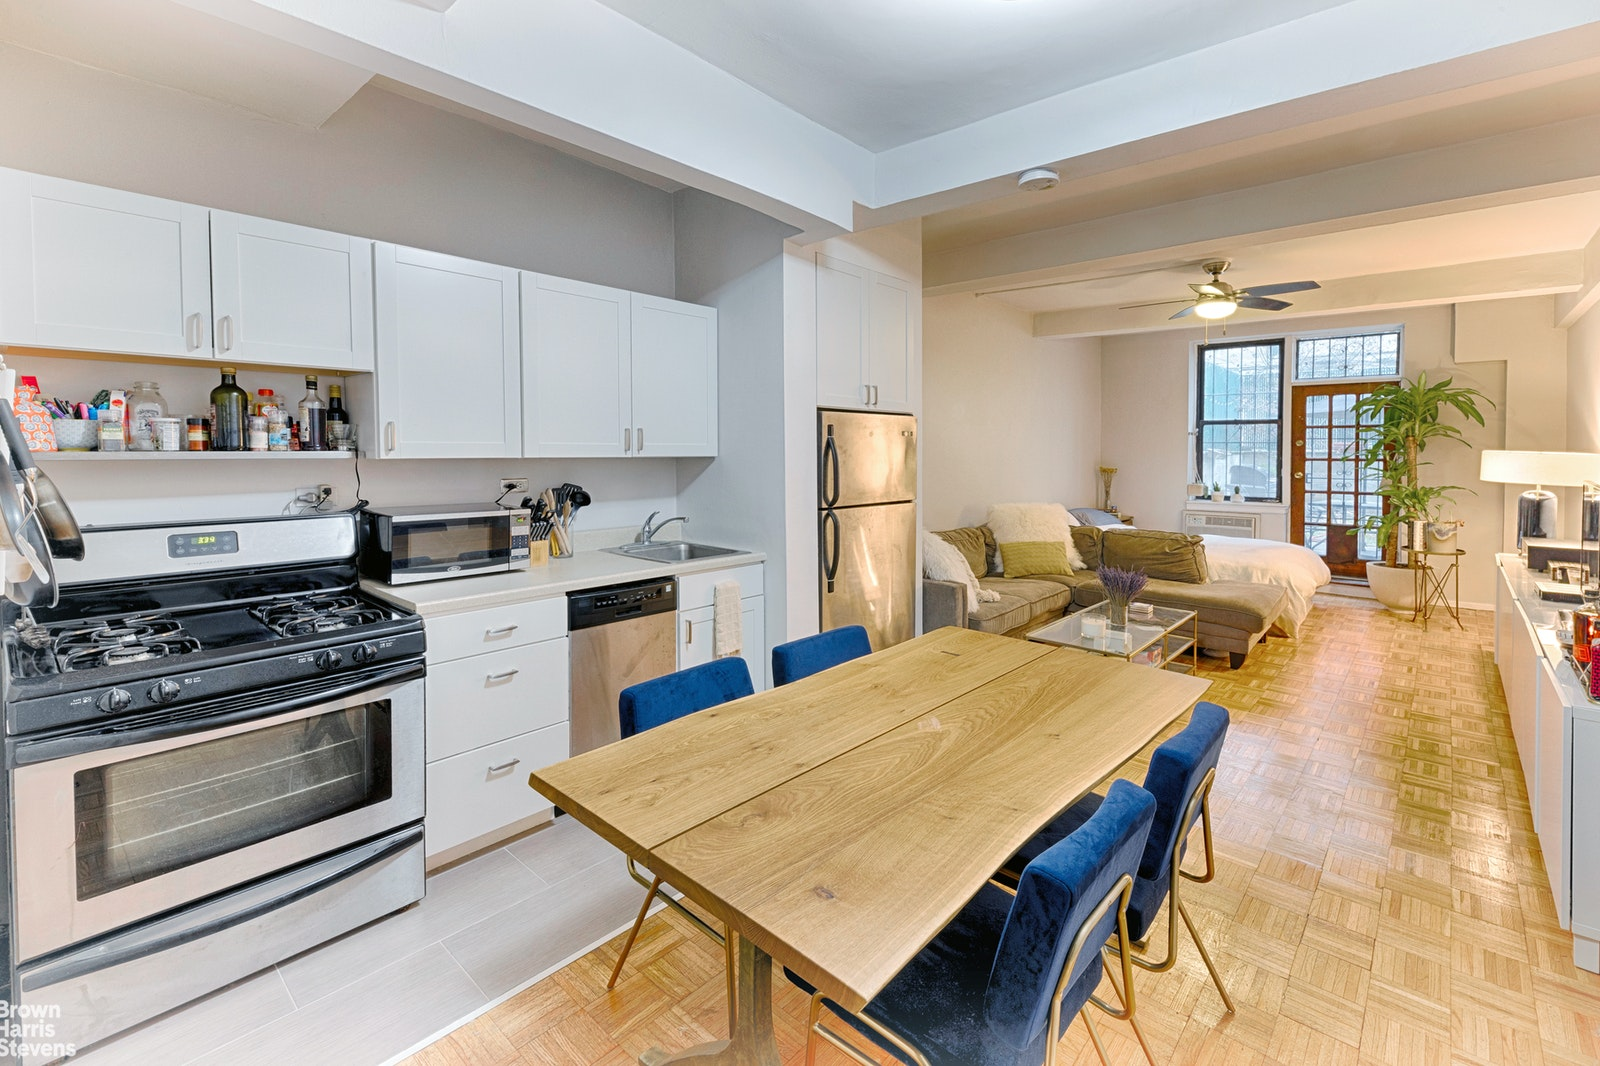 229 East 28th Street, Murray Hill Kips Bay, NYC, 10016, Price Not Disclosed, Rented Property, Halstead Real Estate, Photo 1